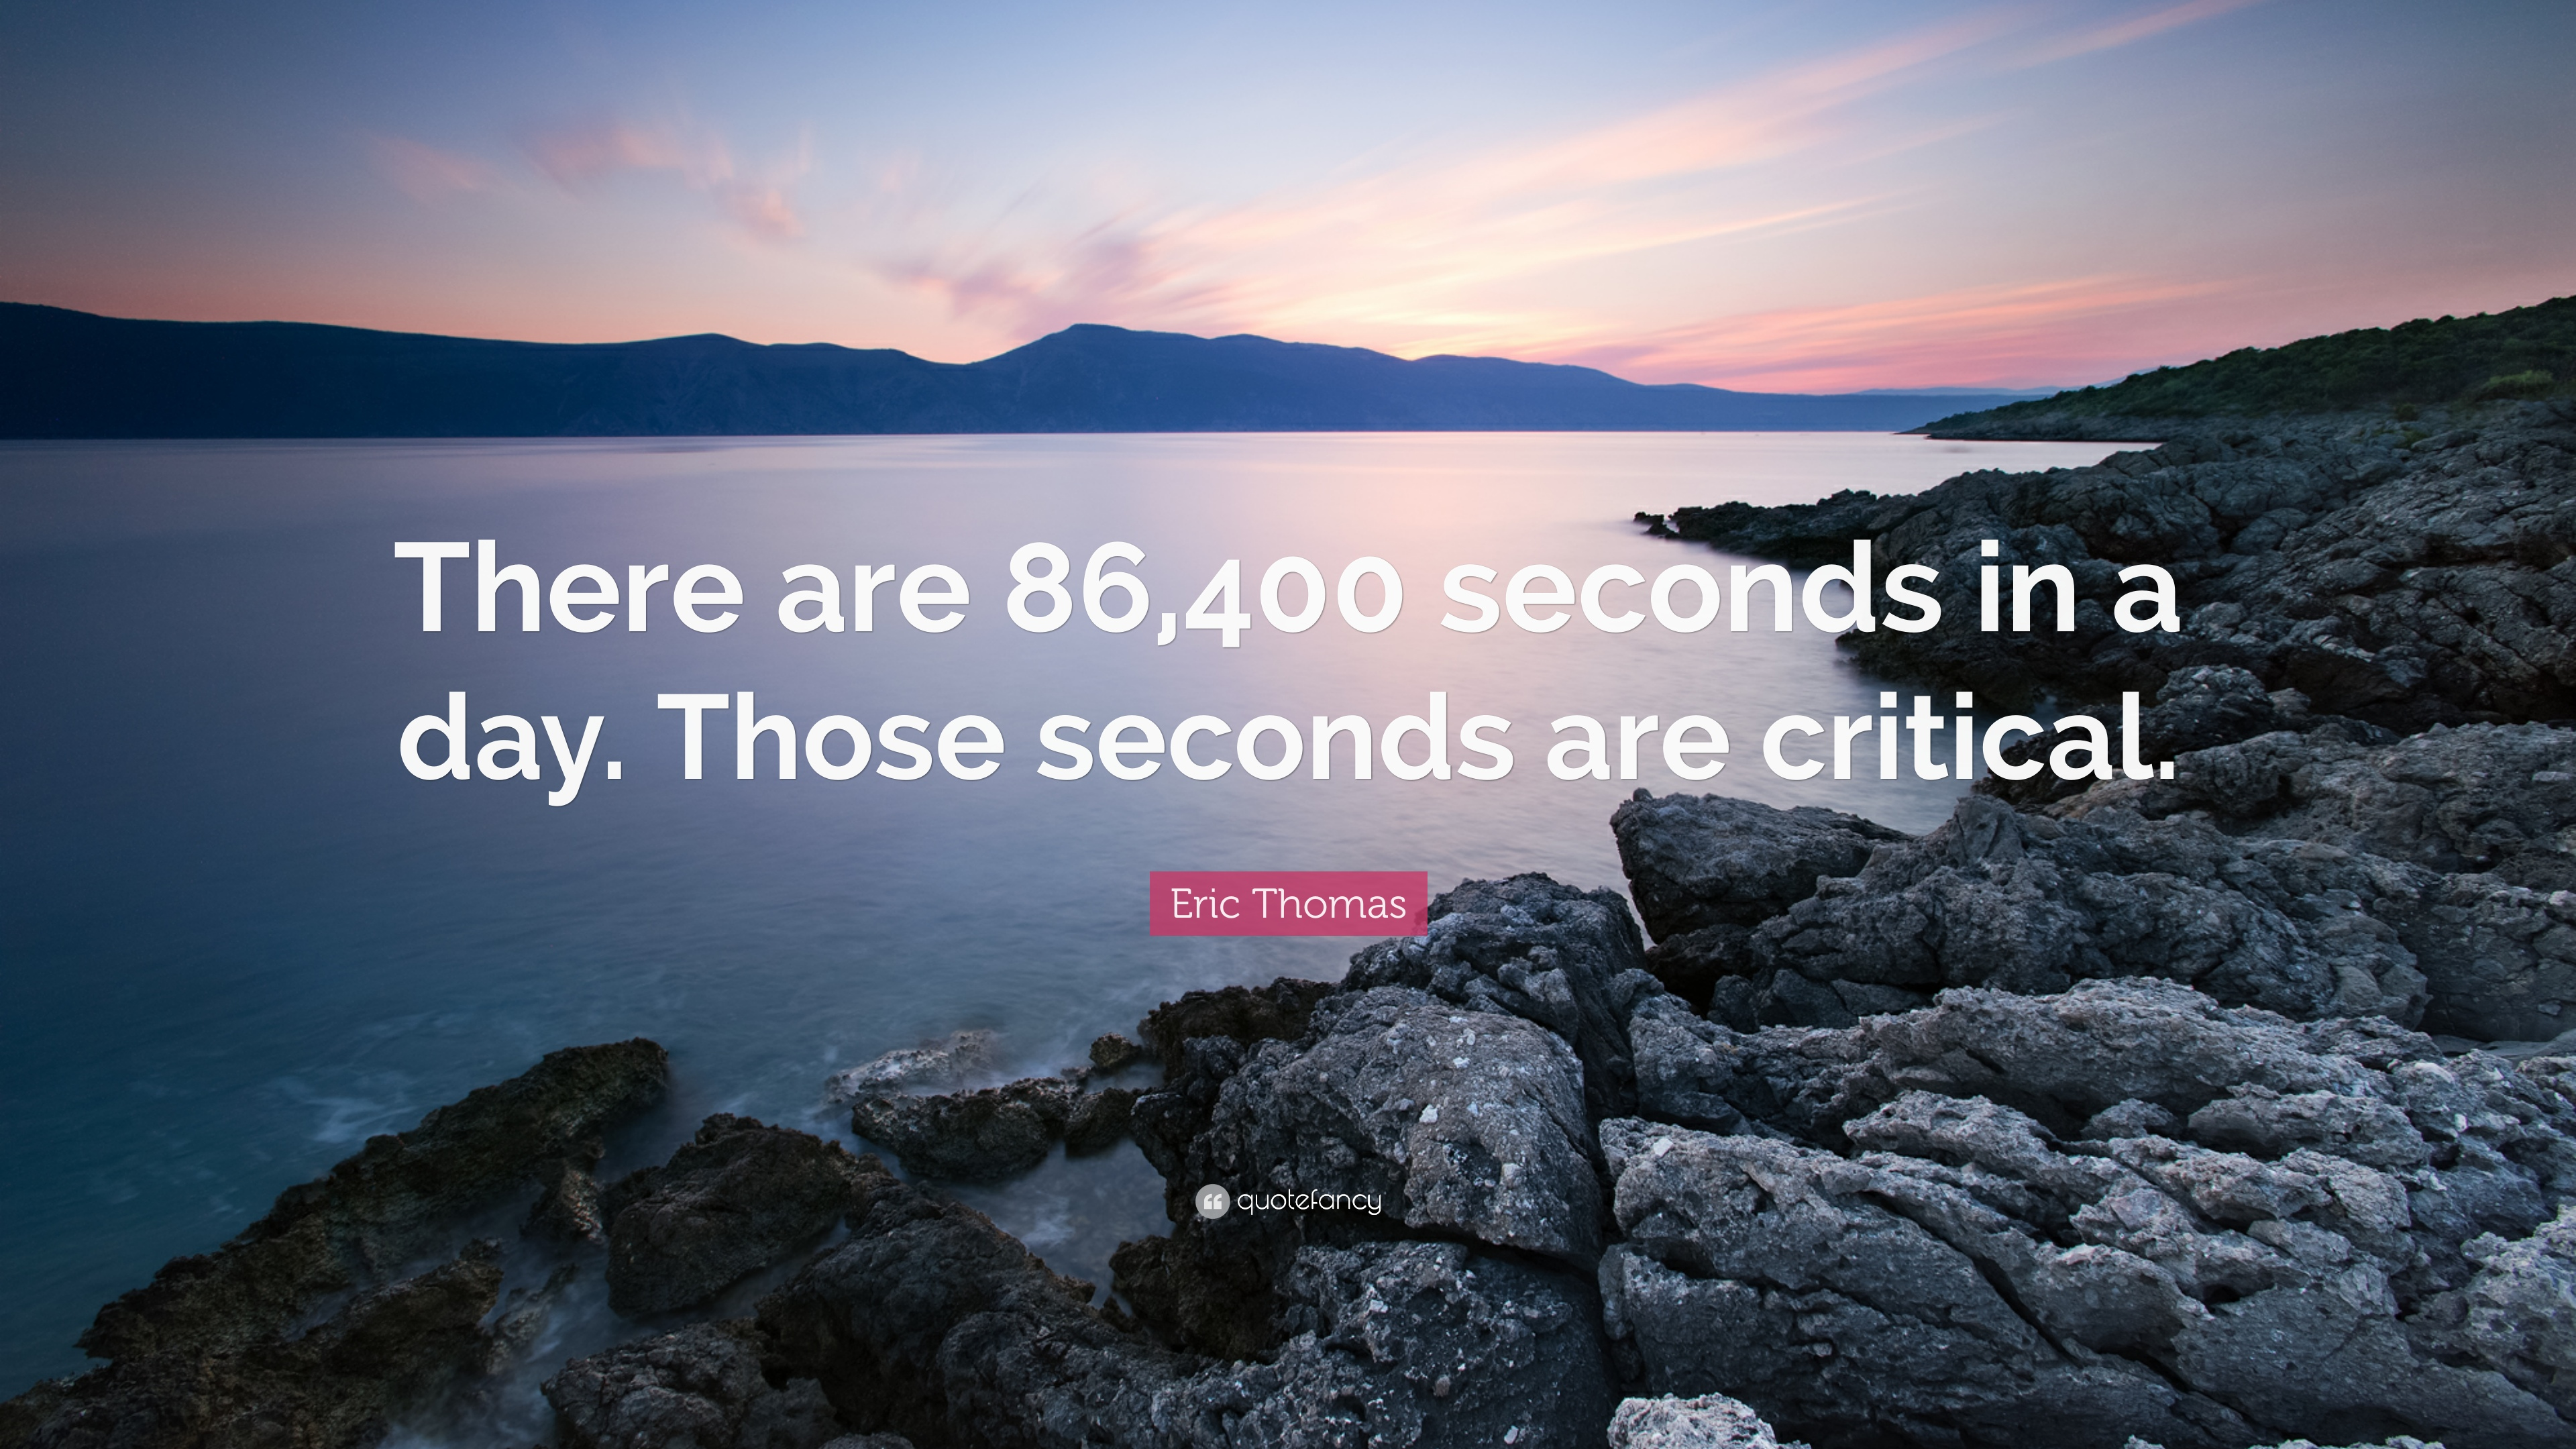 Eric Thomas Quote There Are 86 400 Seconds In A Day Those Seconds Are Critical 9 Wallpapers Quotefancy